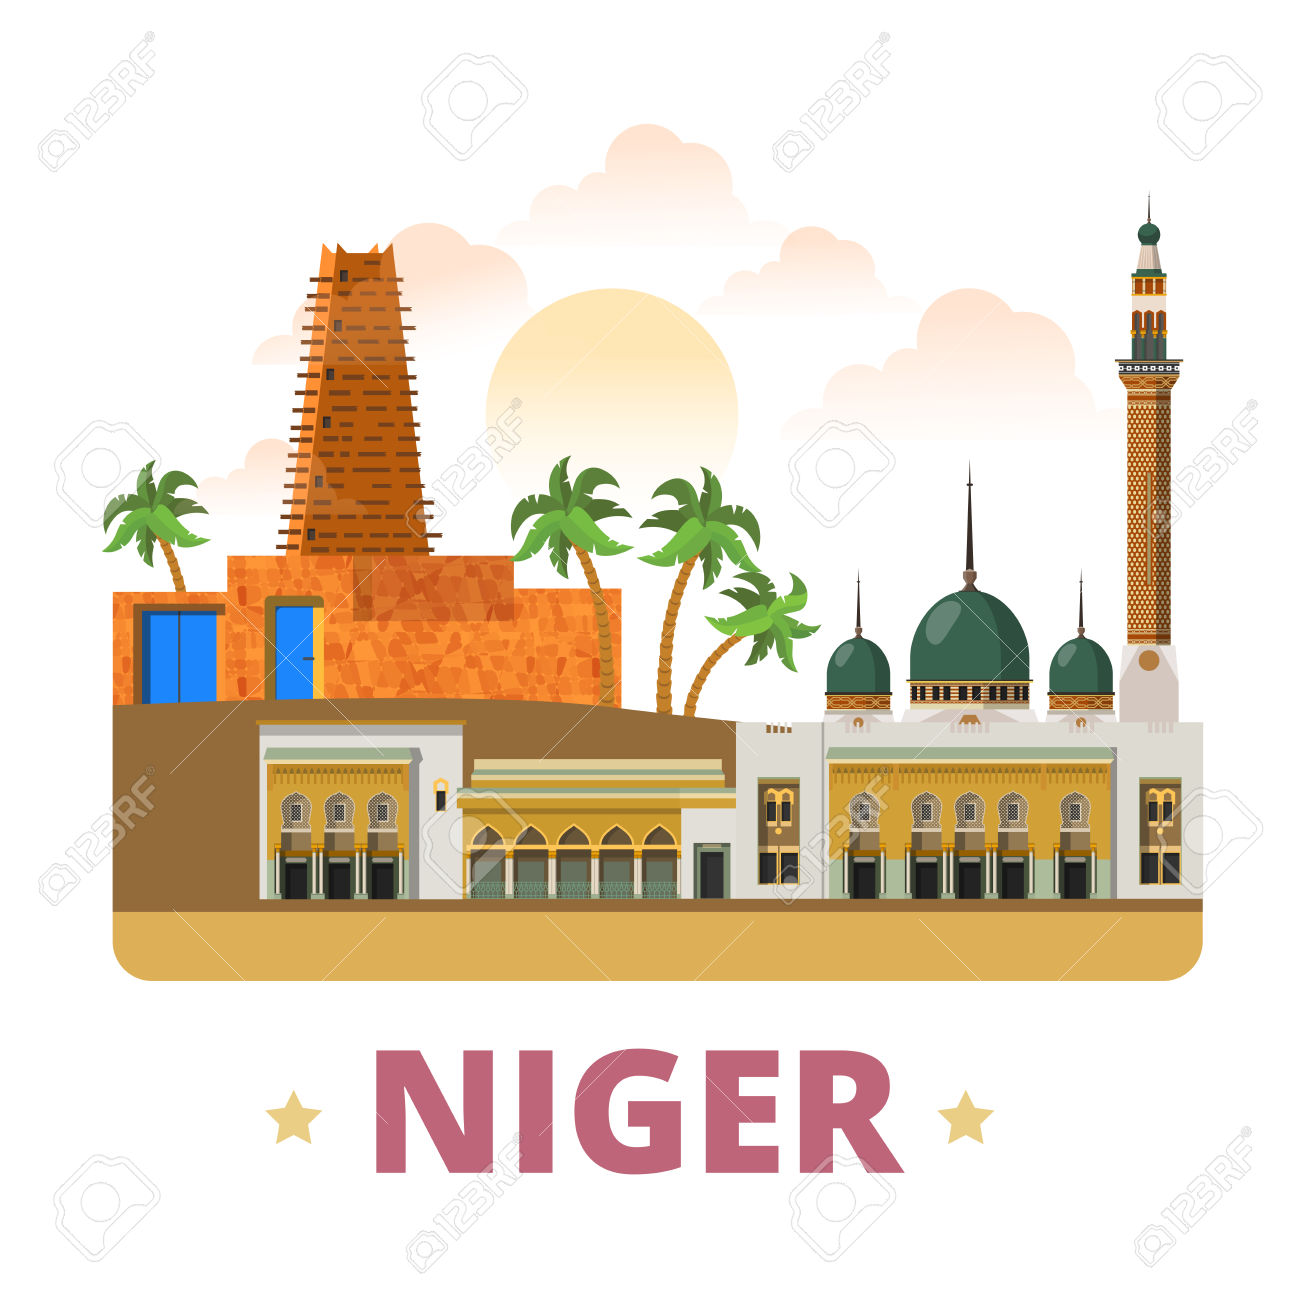 Niger Country Fridge Magnet Design Template. Flat Cartoon Style.